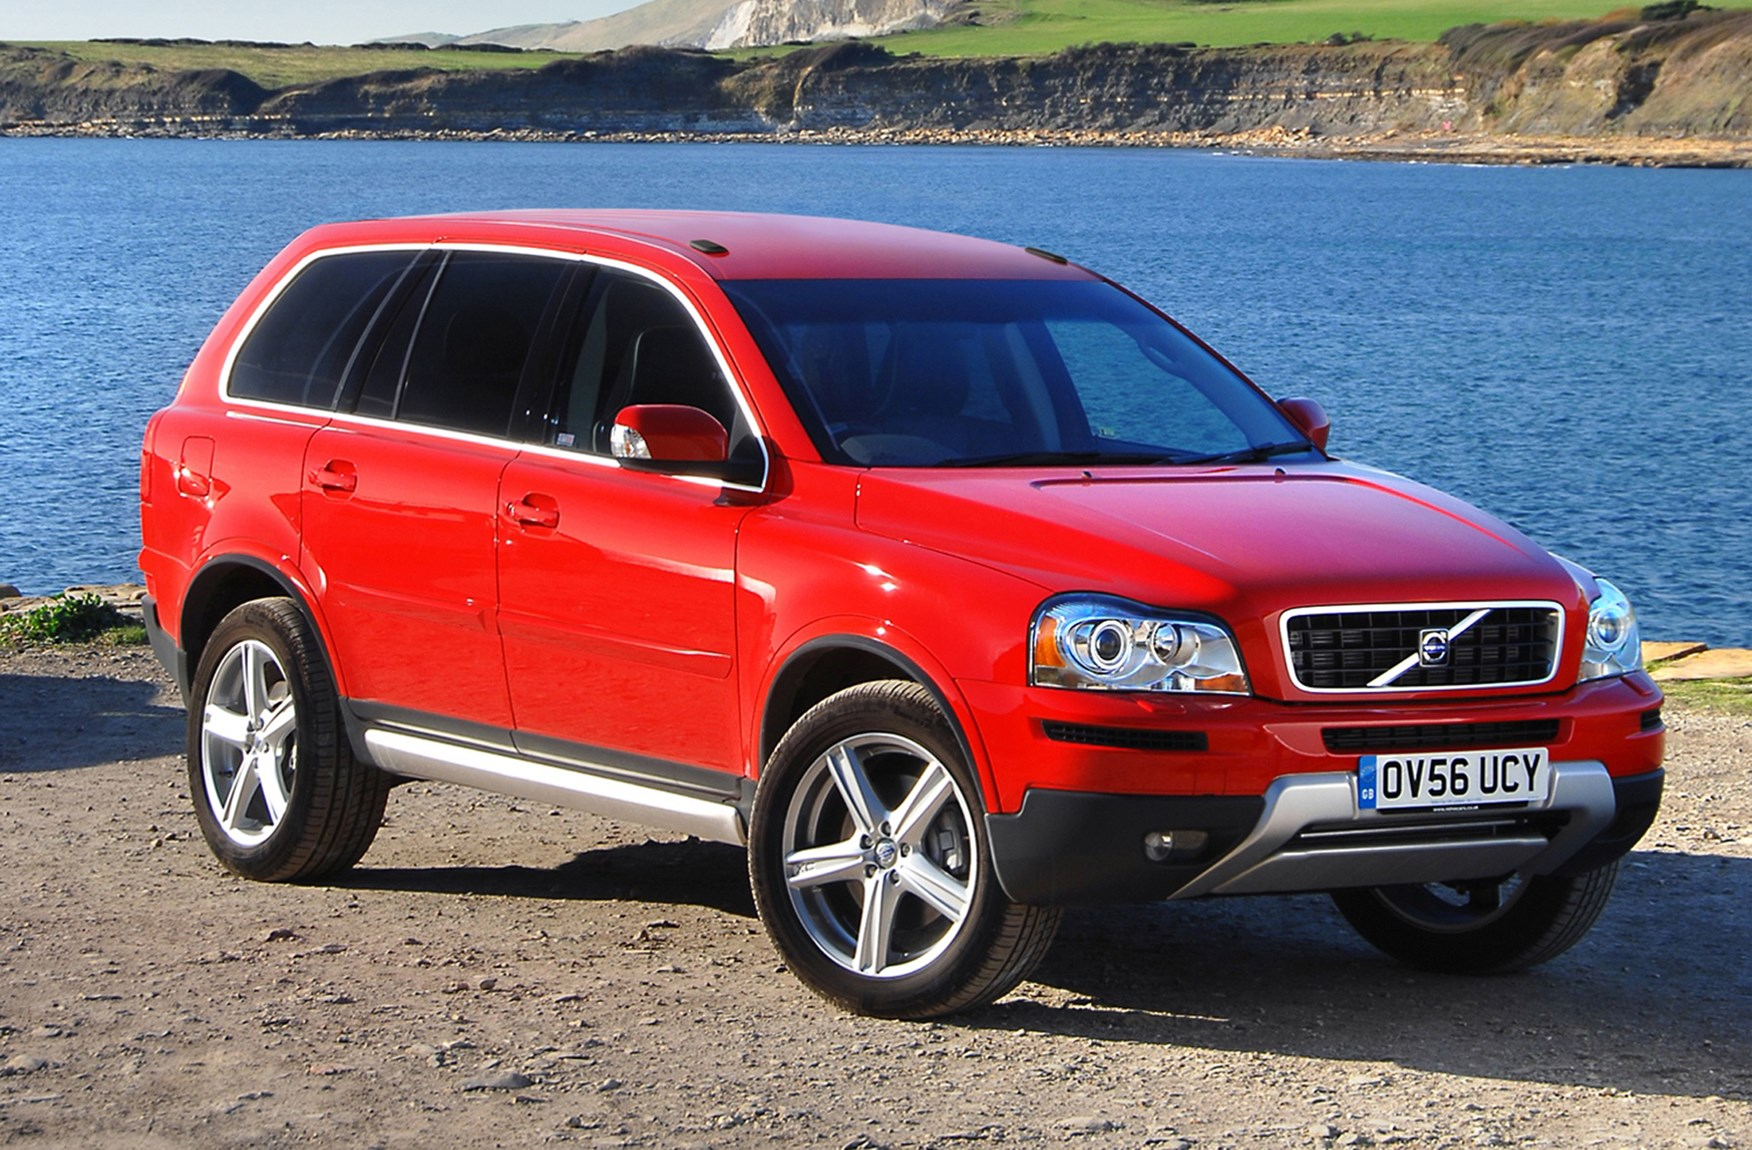 Used Volvo XC90 Estate (2002 - 2014) Review | Parkers